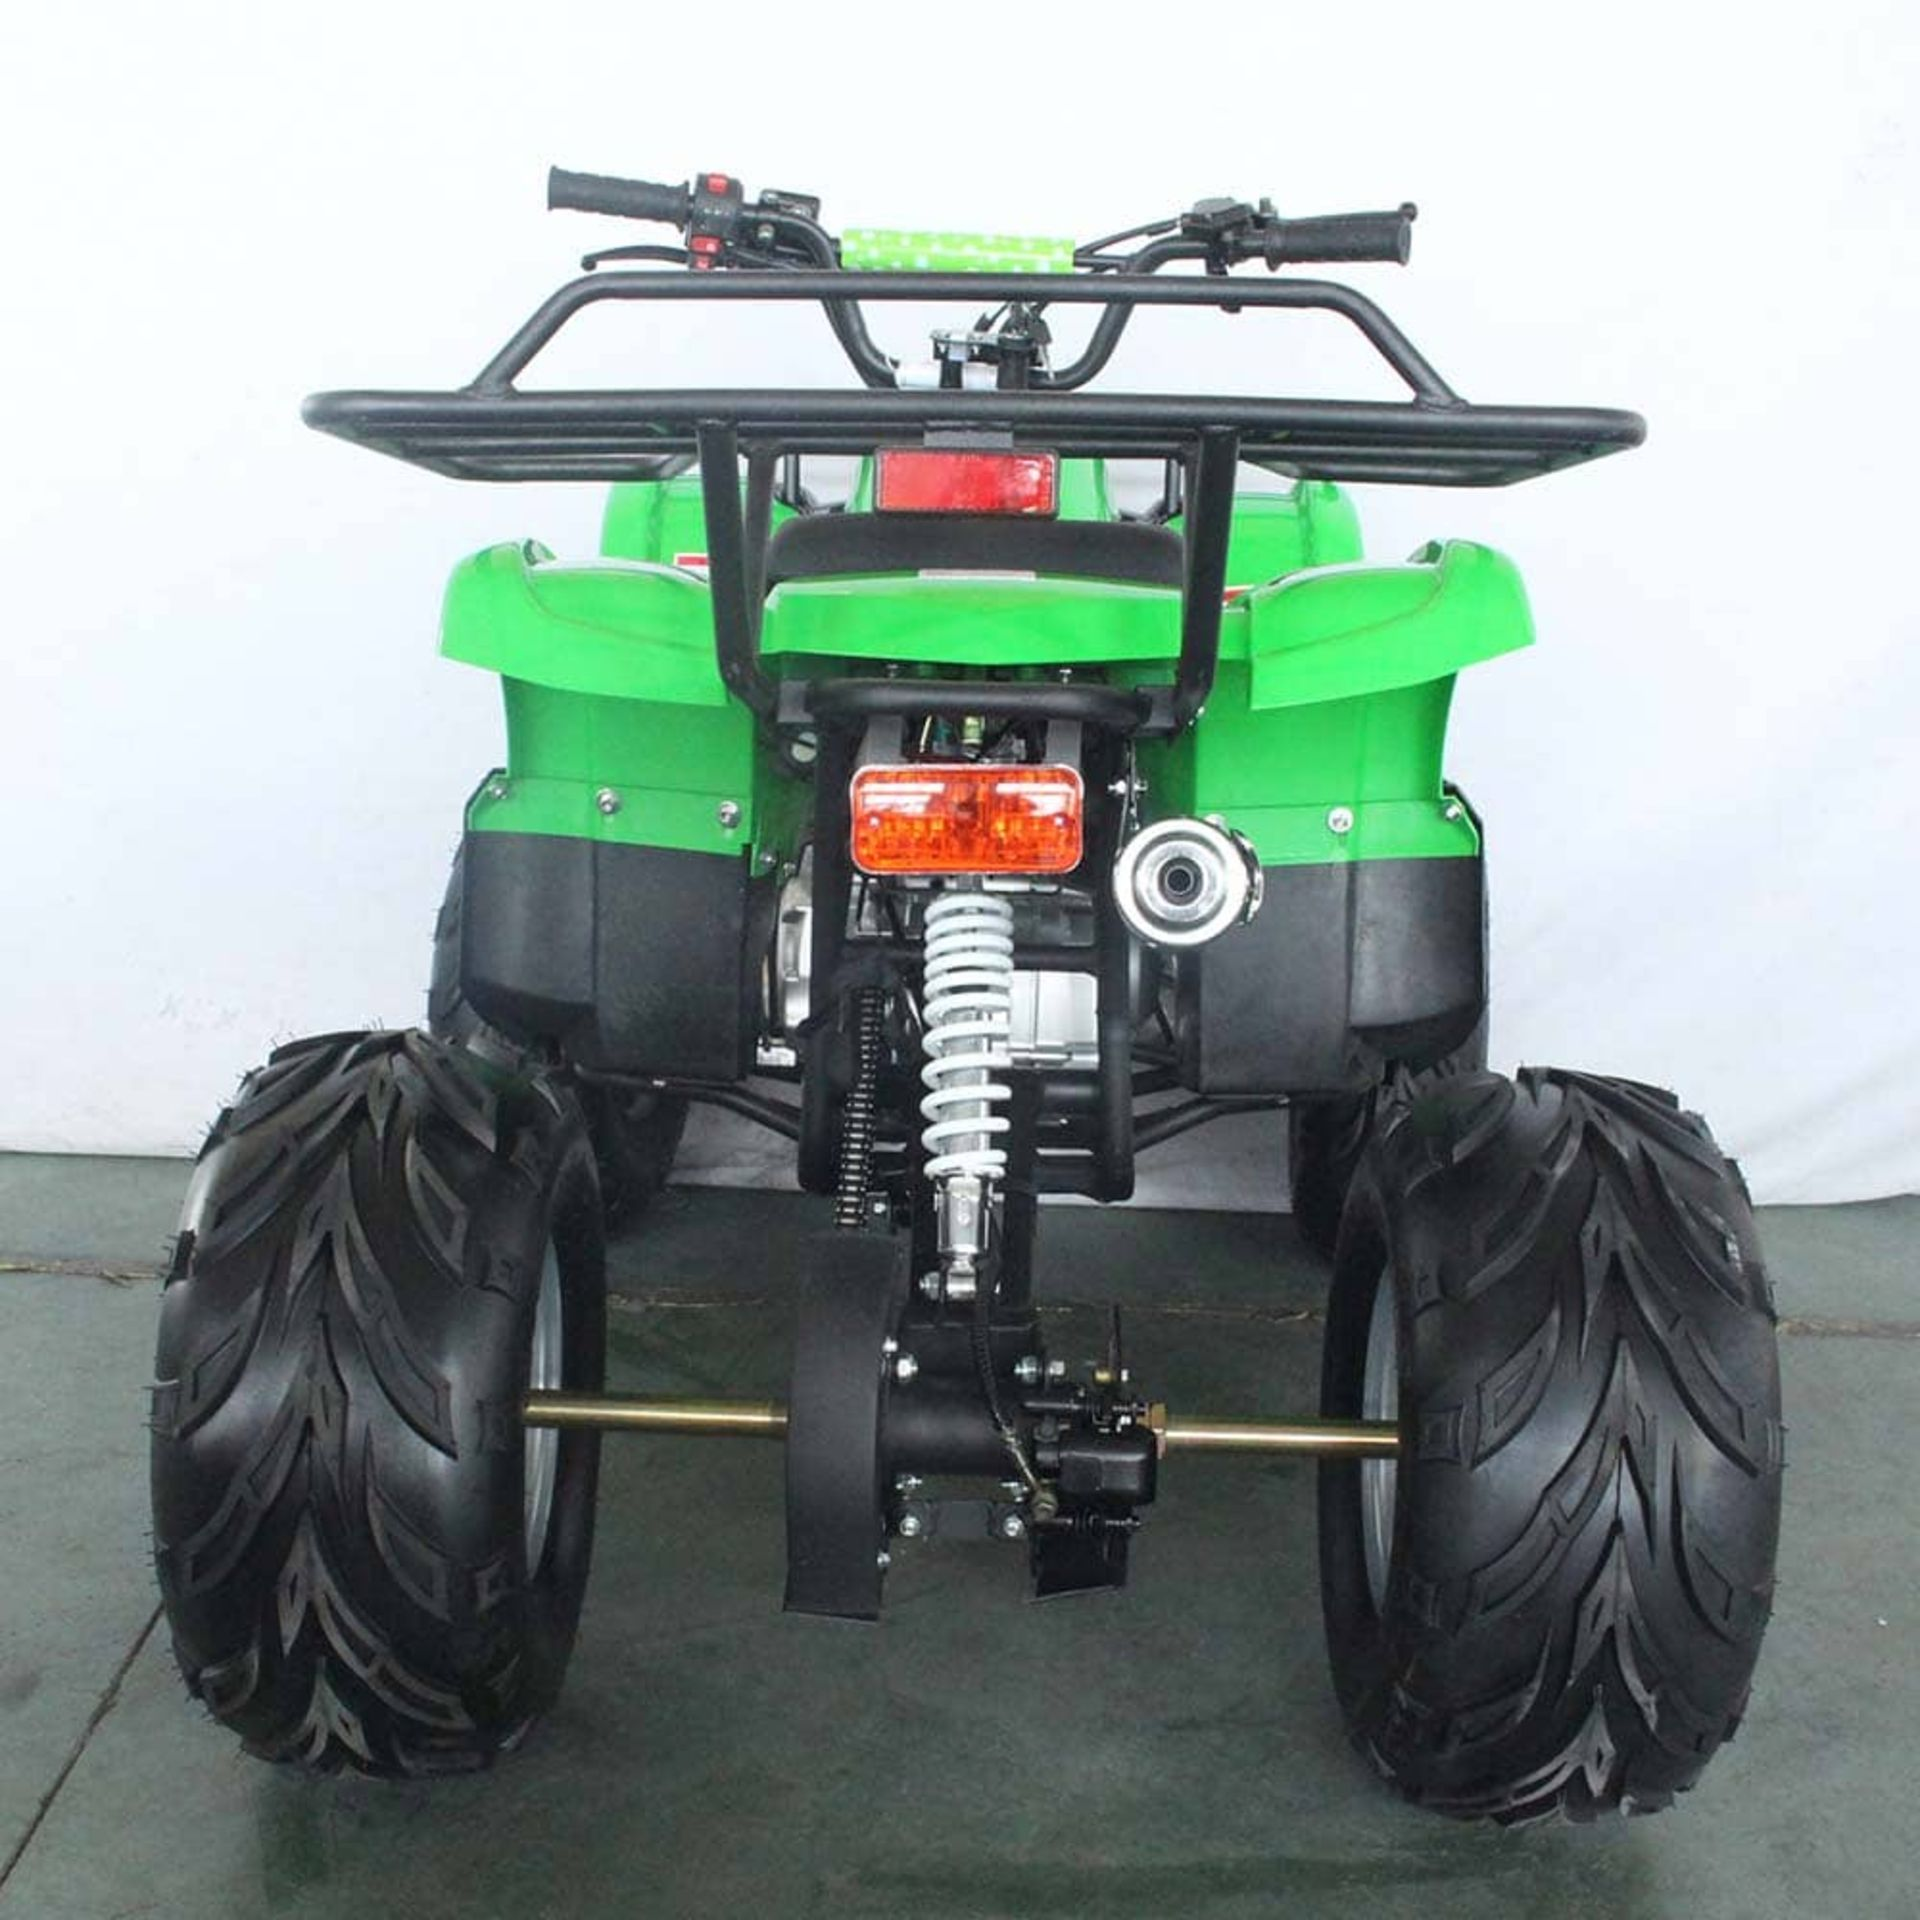 + VAT Brand New 125cc Condor Quad Bike - Four Stroke - Single Cylinder - Front Drum Brakes & Rear - Image 4 of 9